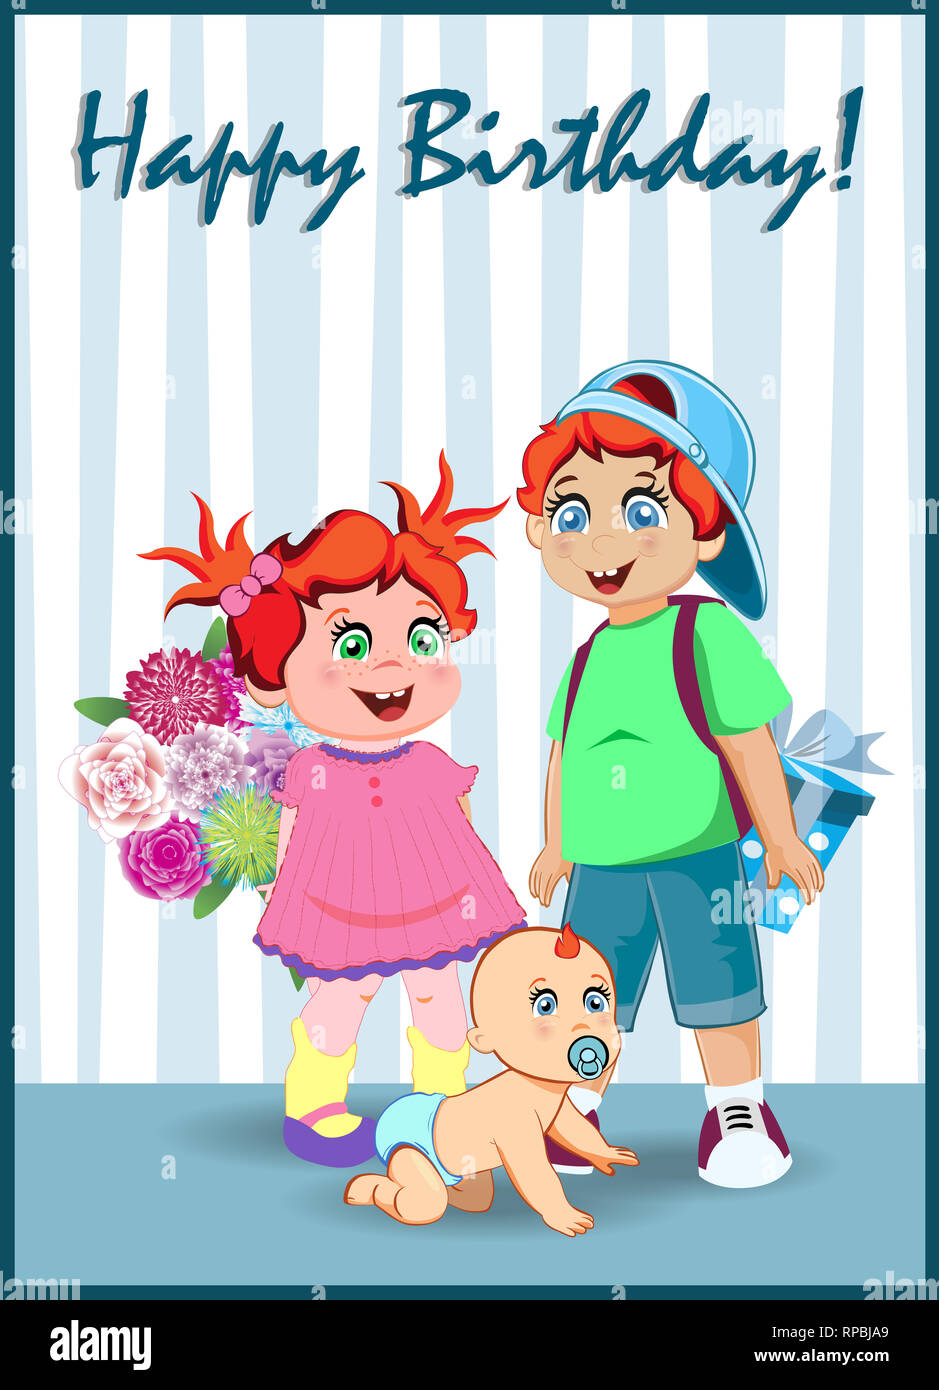 Happy Birthday Greeting Card Of Cute Cartoon Kids Characters Holding Big Gift Box And Flowers Bouquet On Striped Background Illustration Kawaii Baby